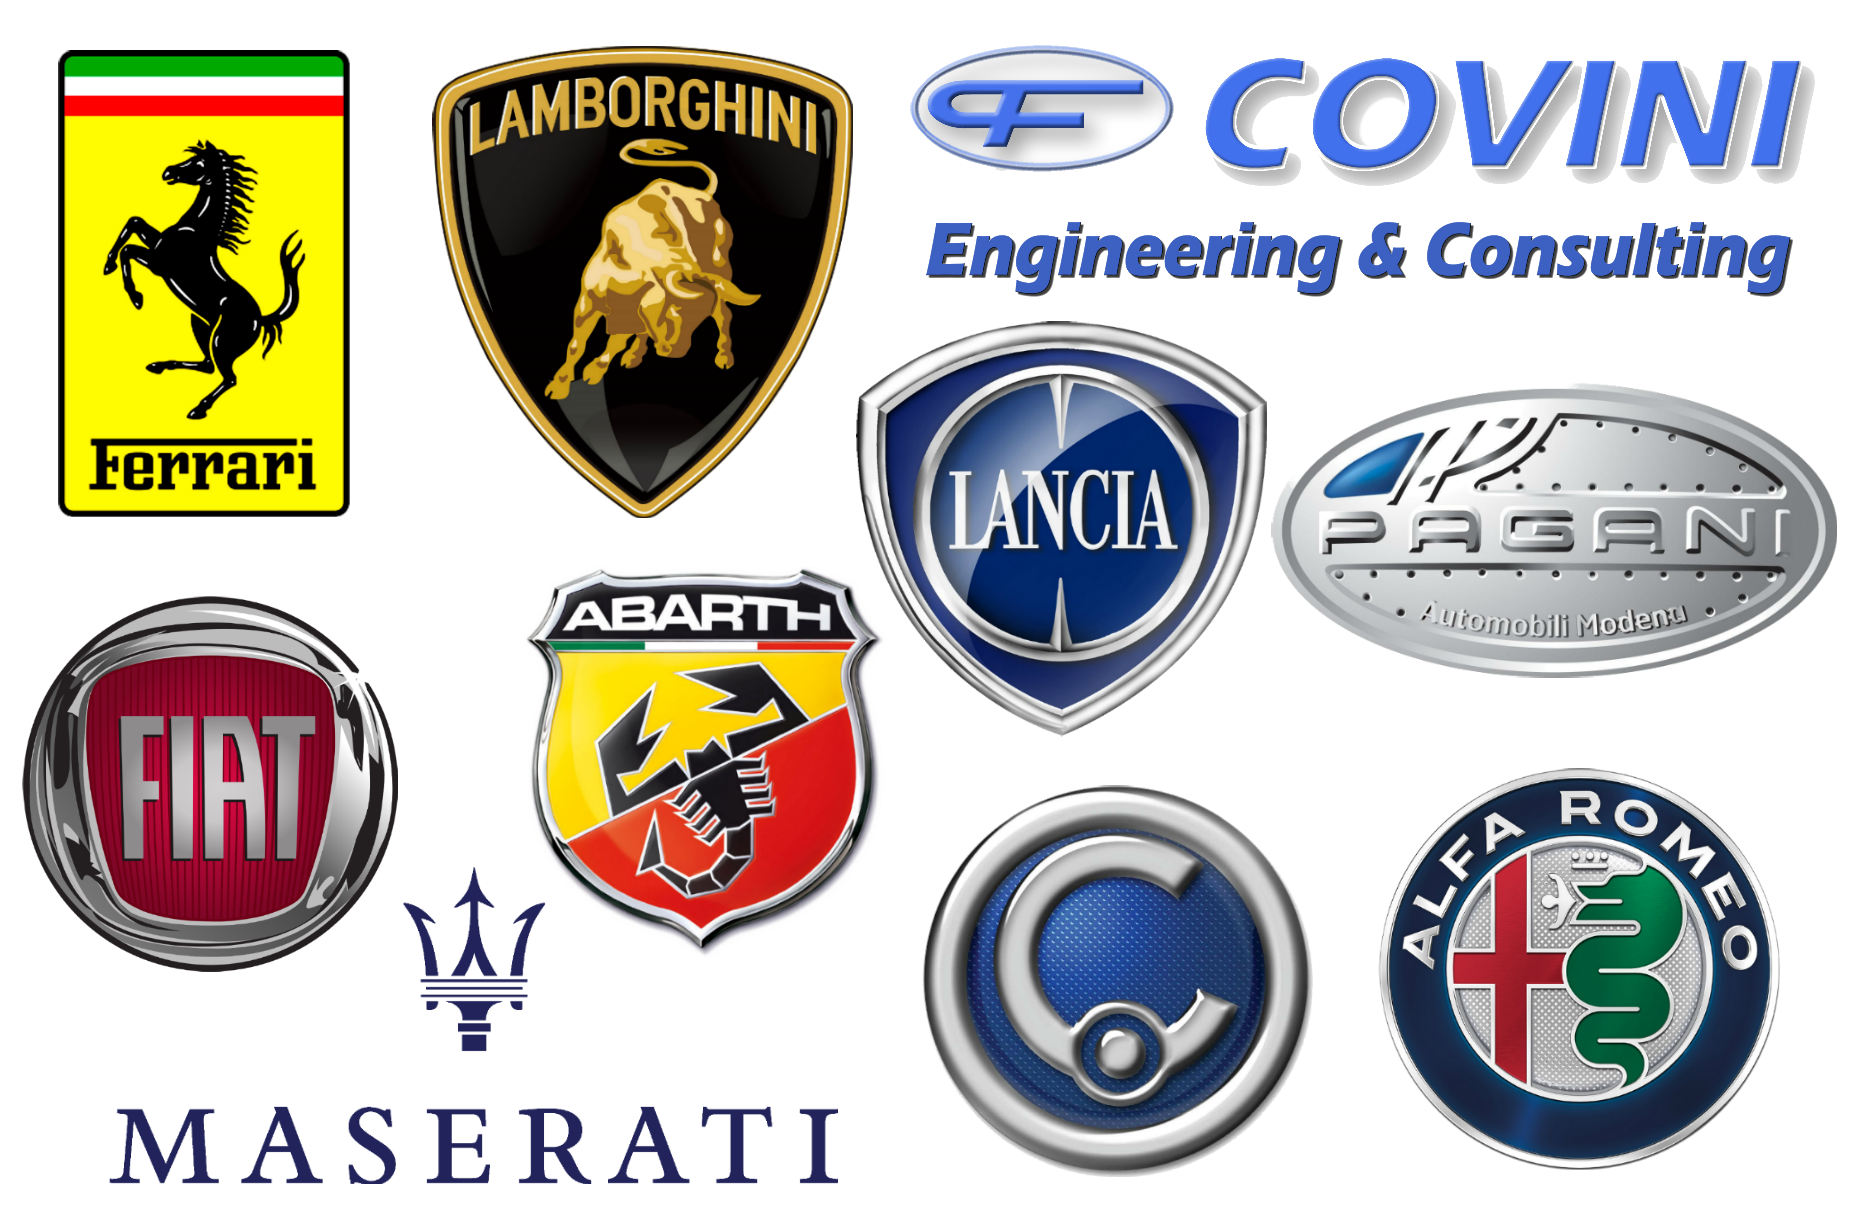 Car Logos And Their Brand Names >> Italian Car Brands, Companies and Manufacturers | Car Brand Names.com